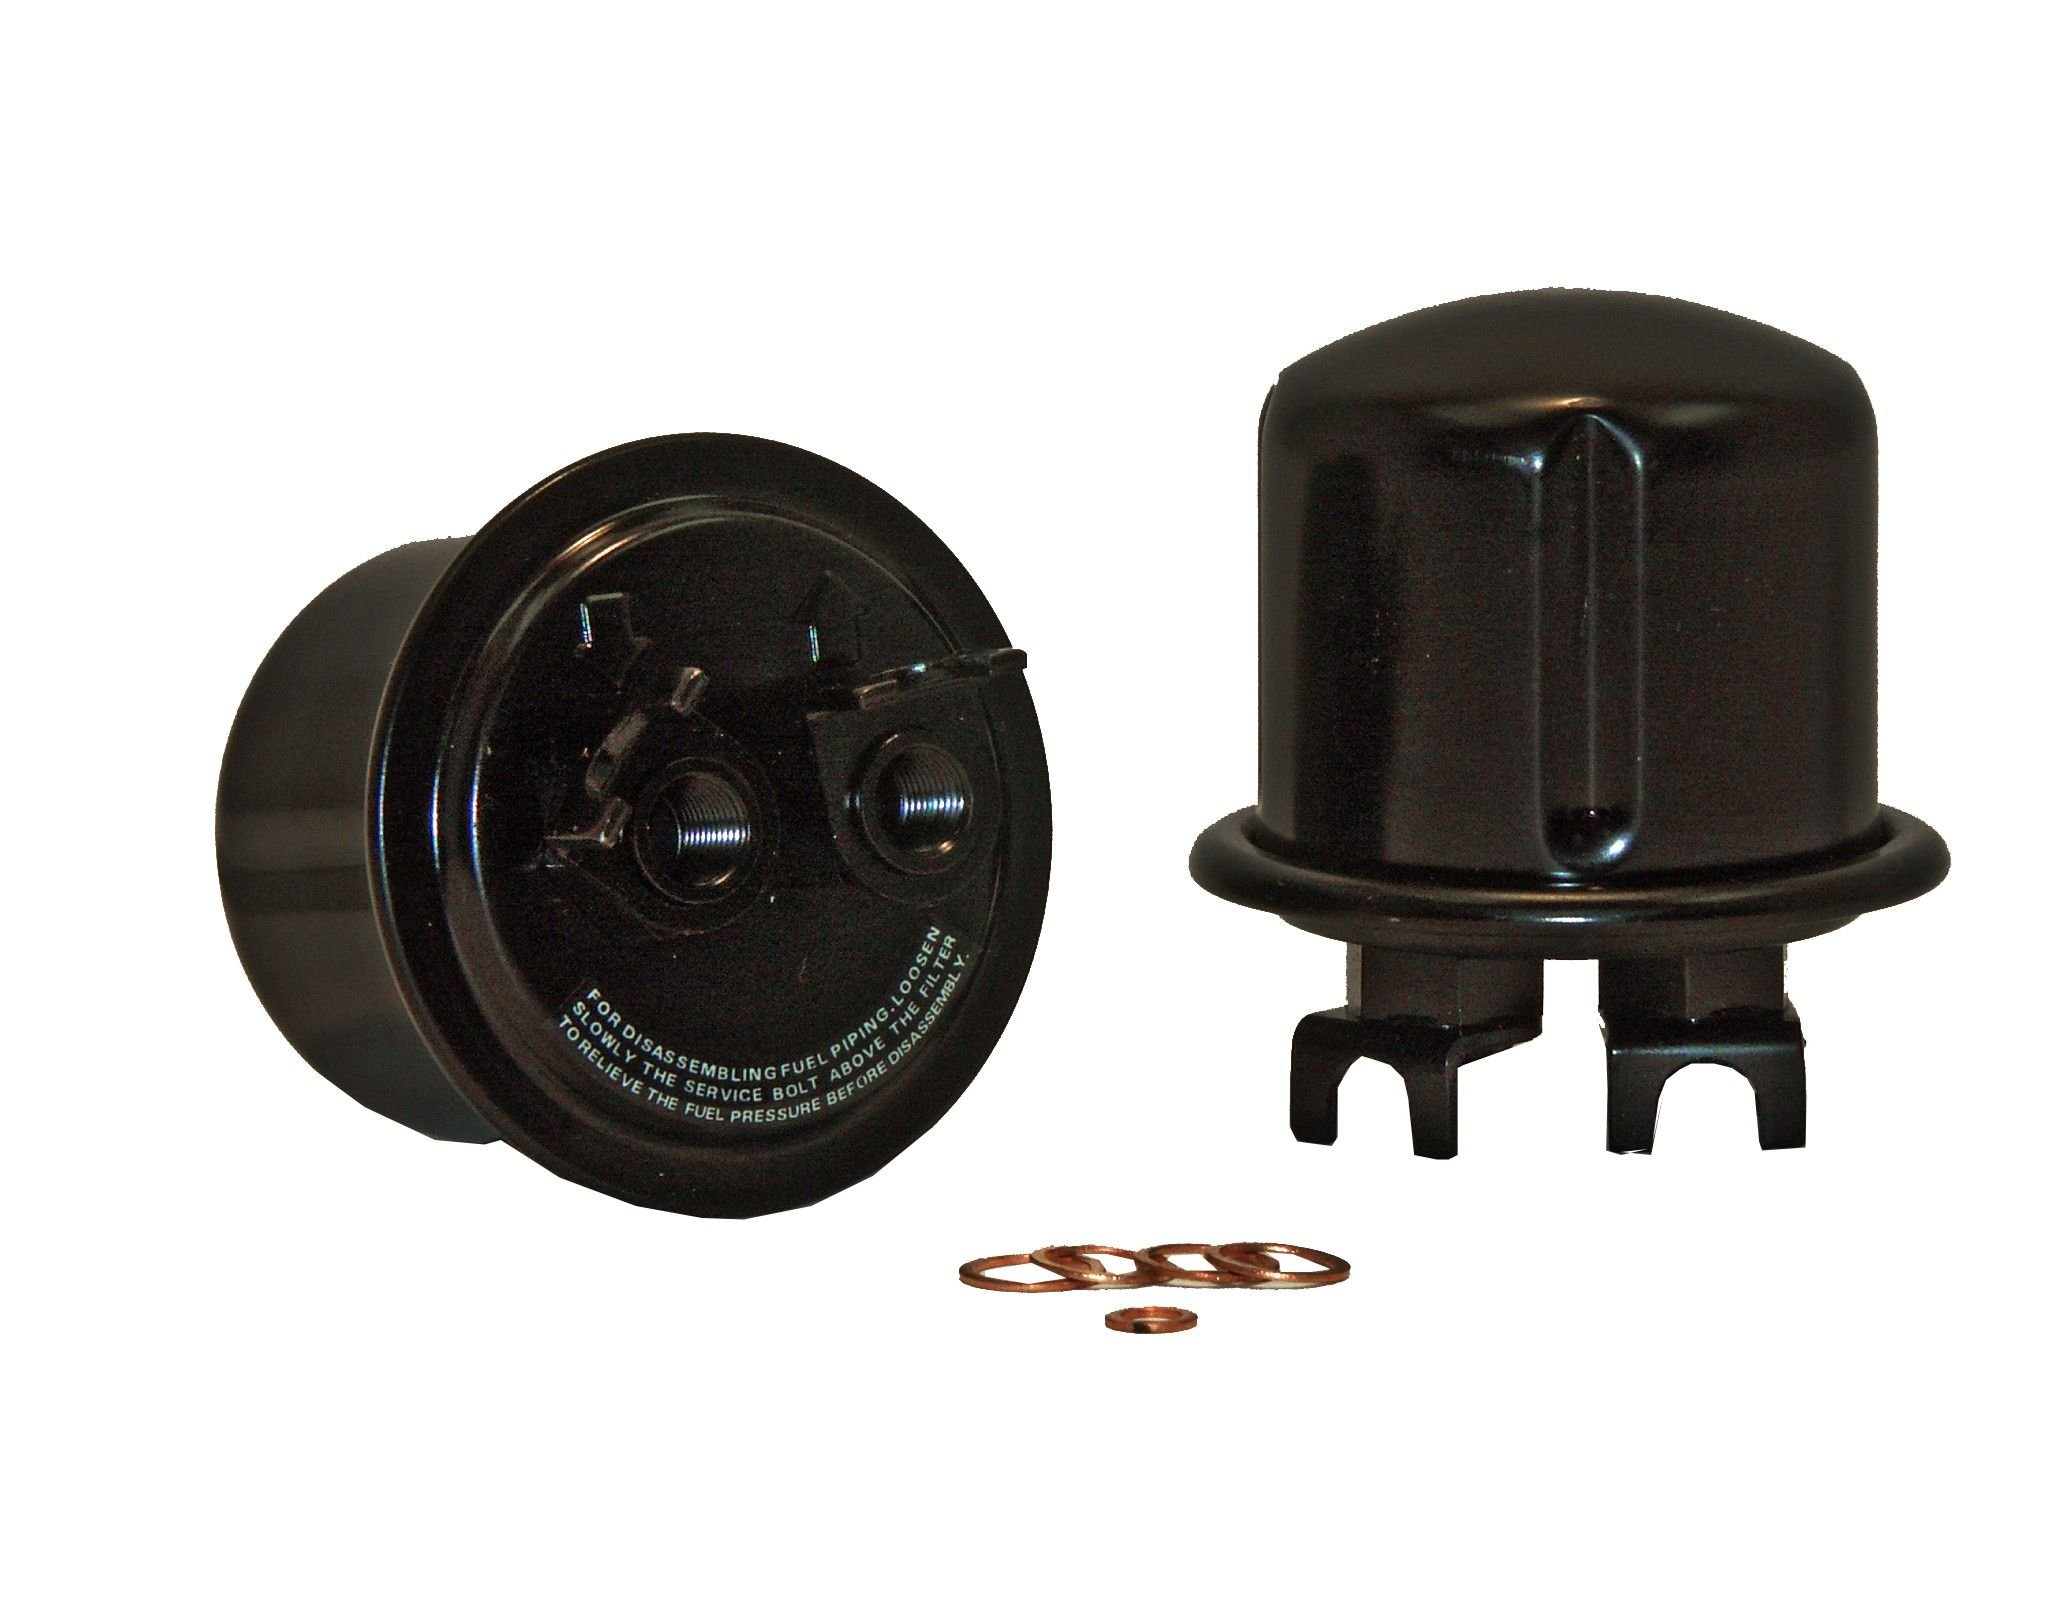 Acura Integra Fuel Filter Replacement (Beck Arnley, Hastings ... on